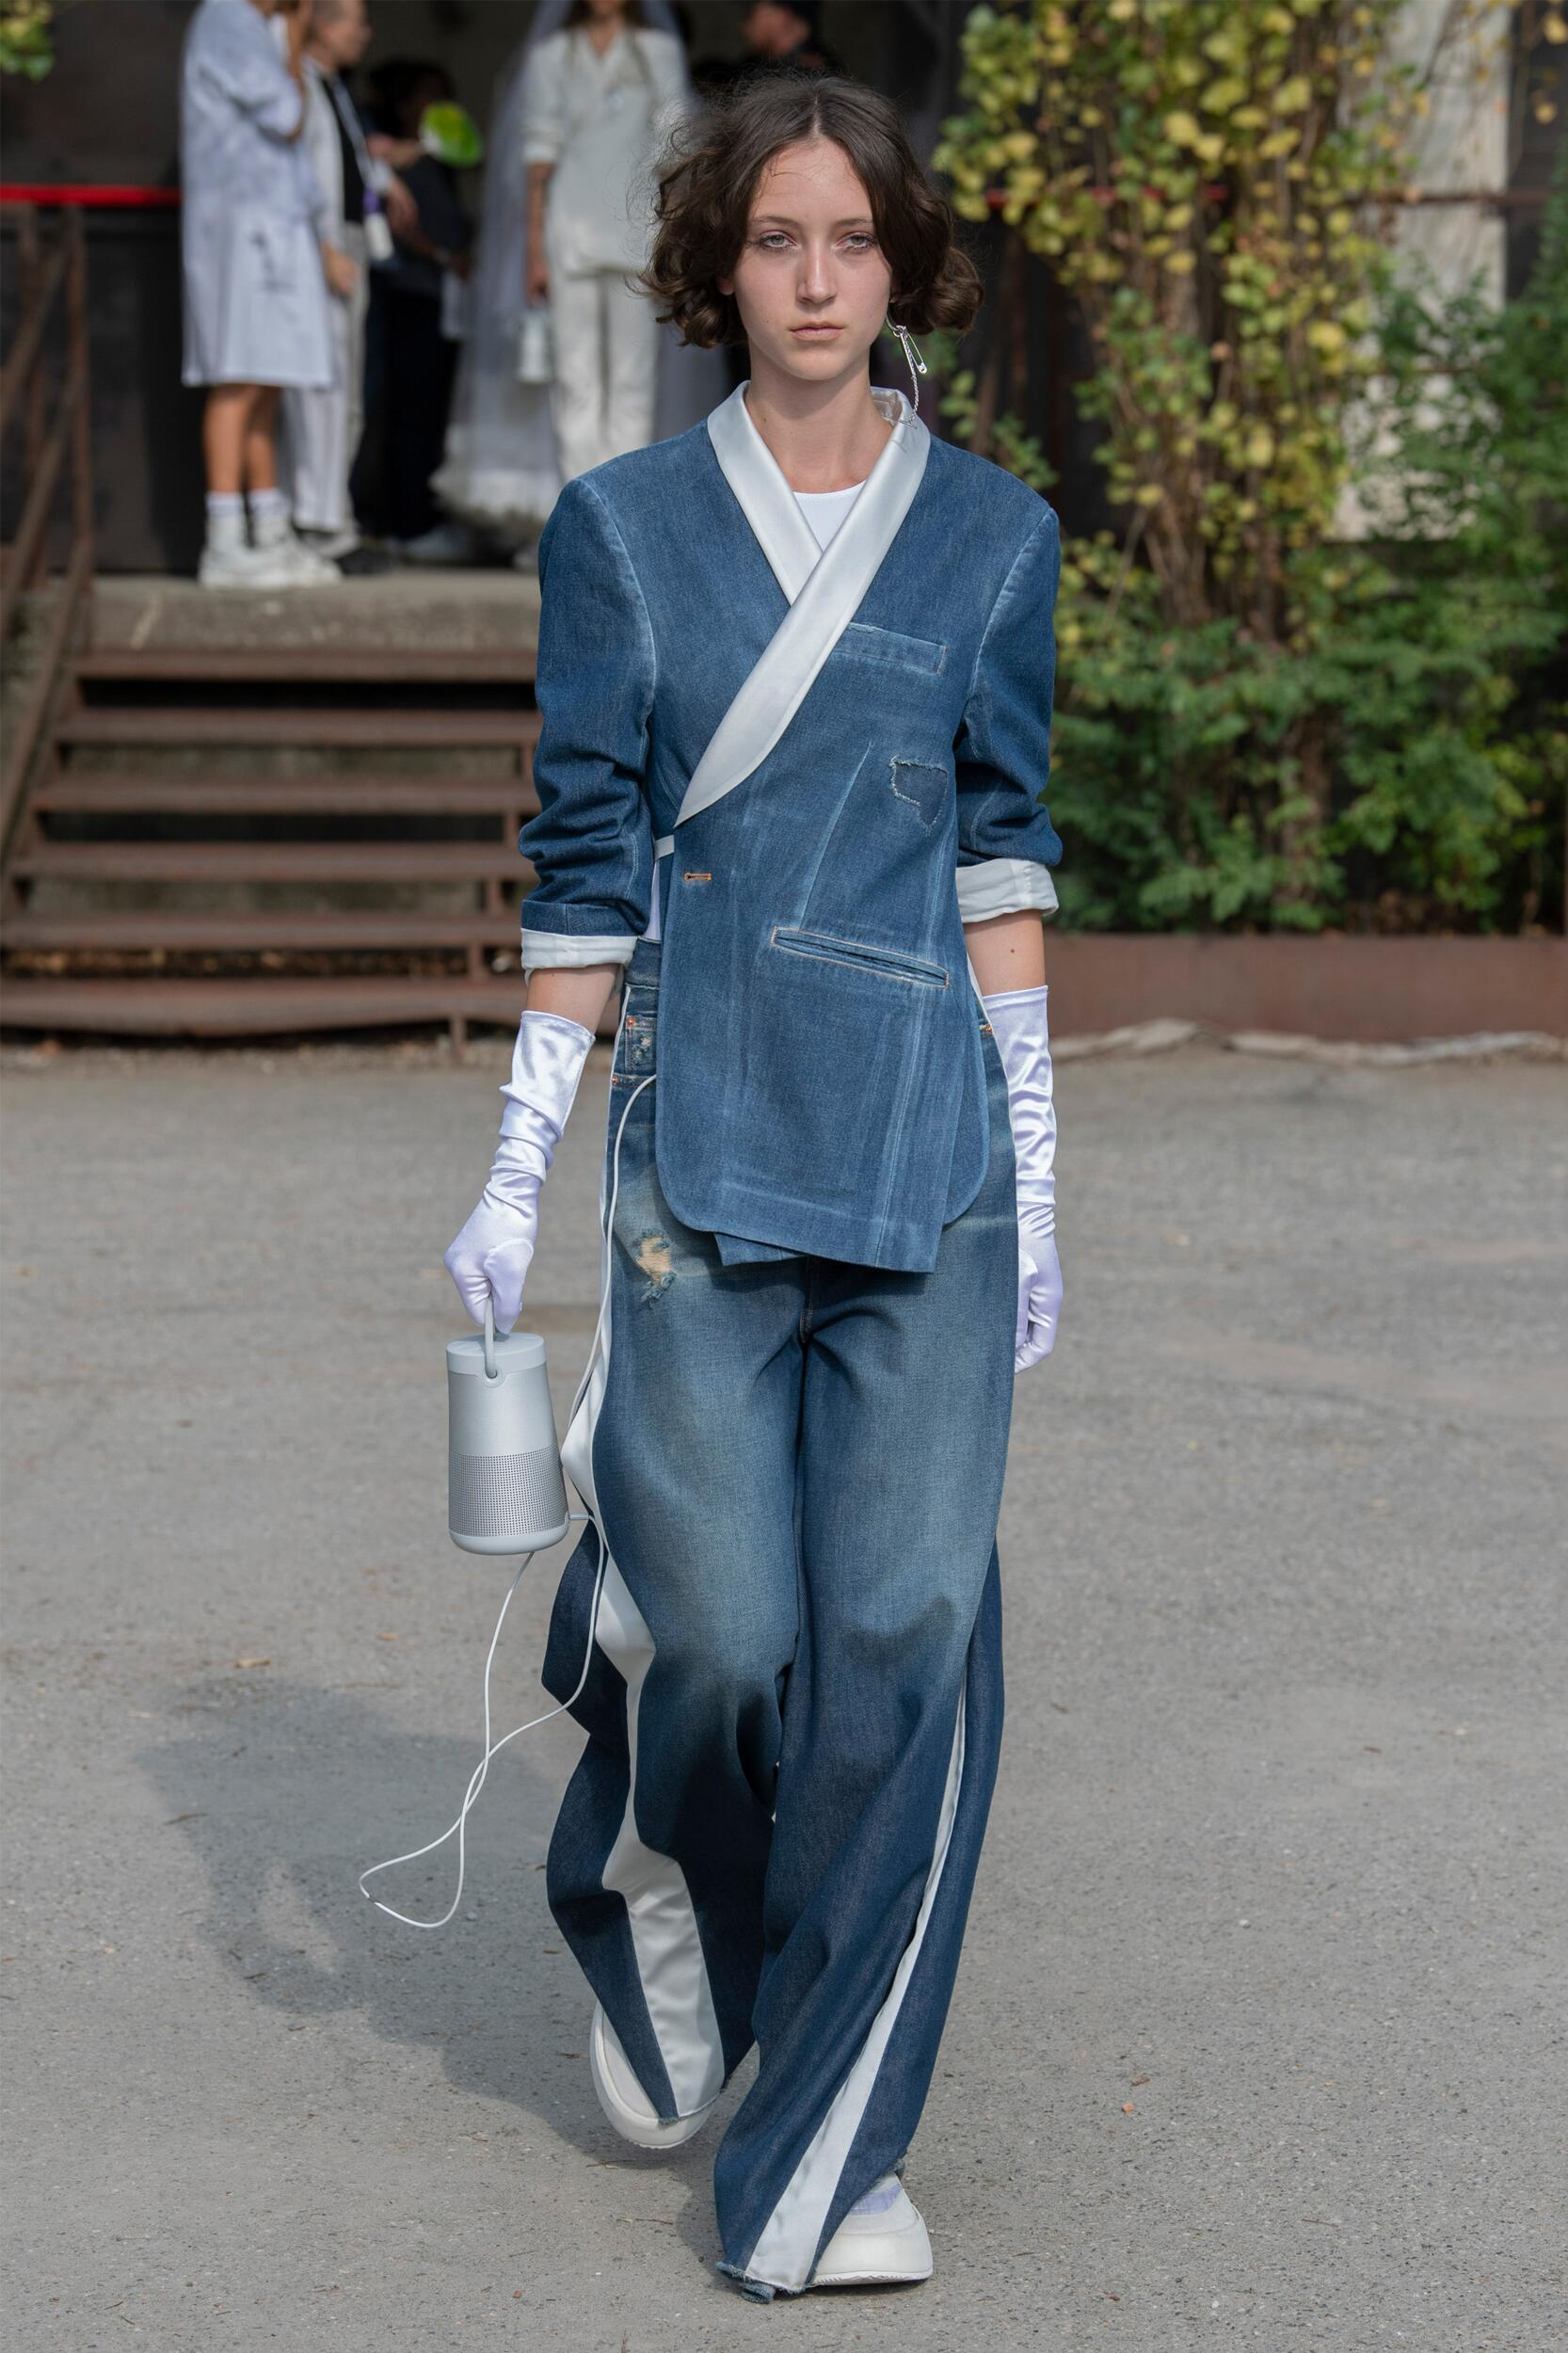 Runway MM6 Maison Margiela Spring Summer 2020 Women's Collection Milan Fashion Week